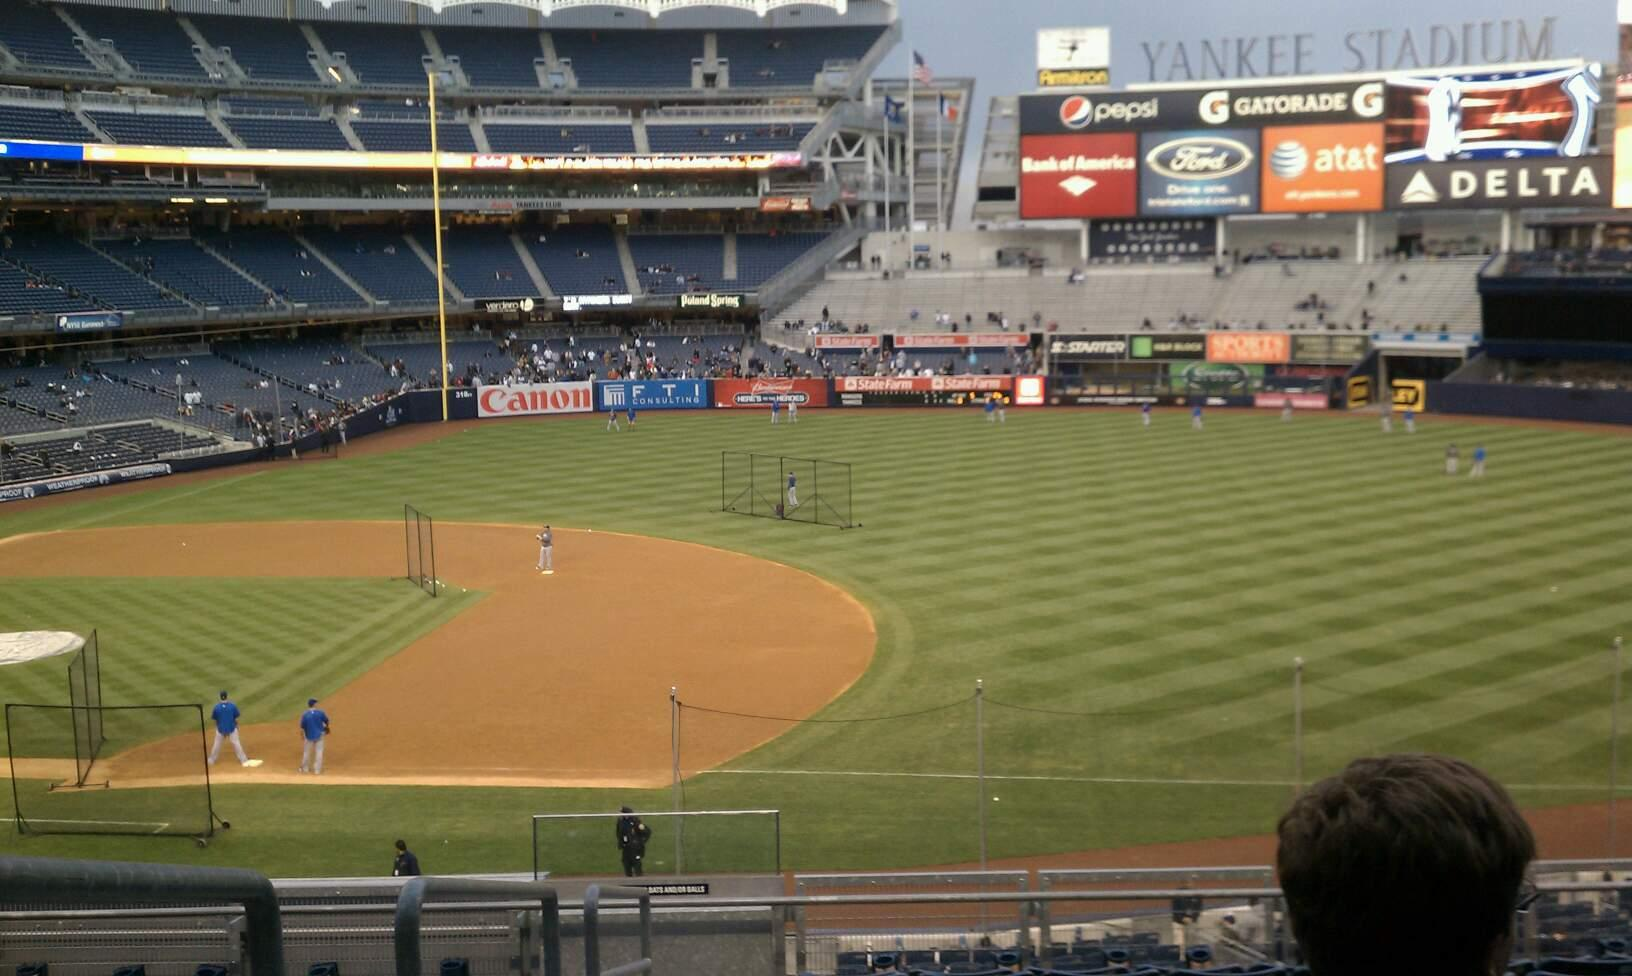 Yankee Stadium Section 214a Row 10 Seat 14